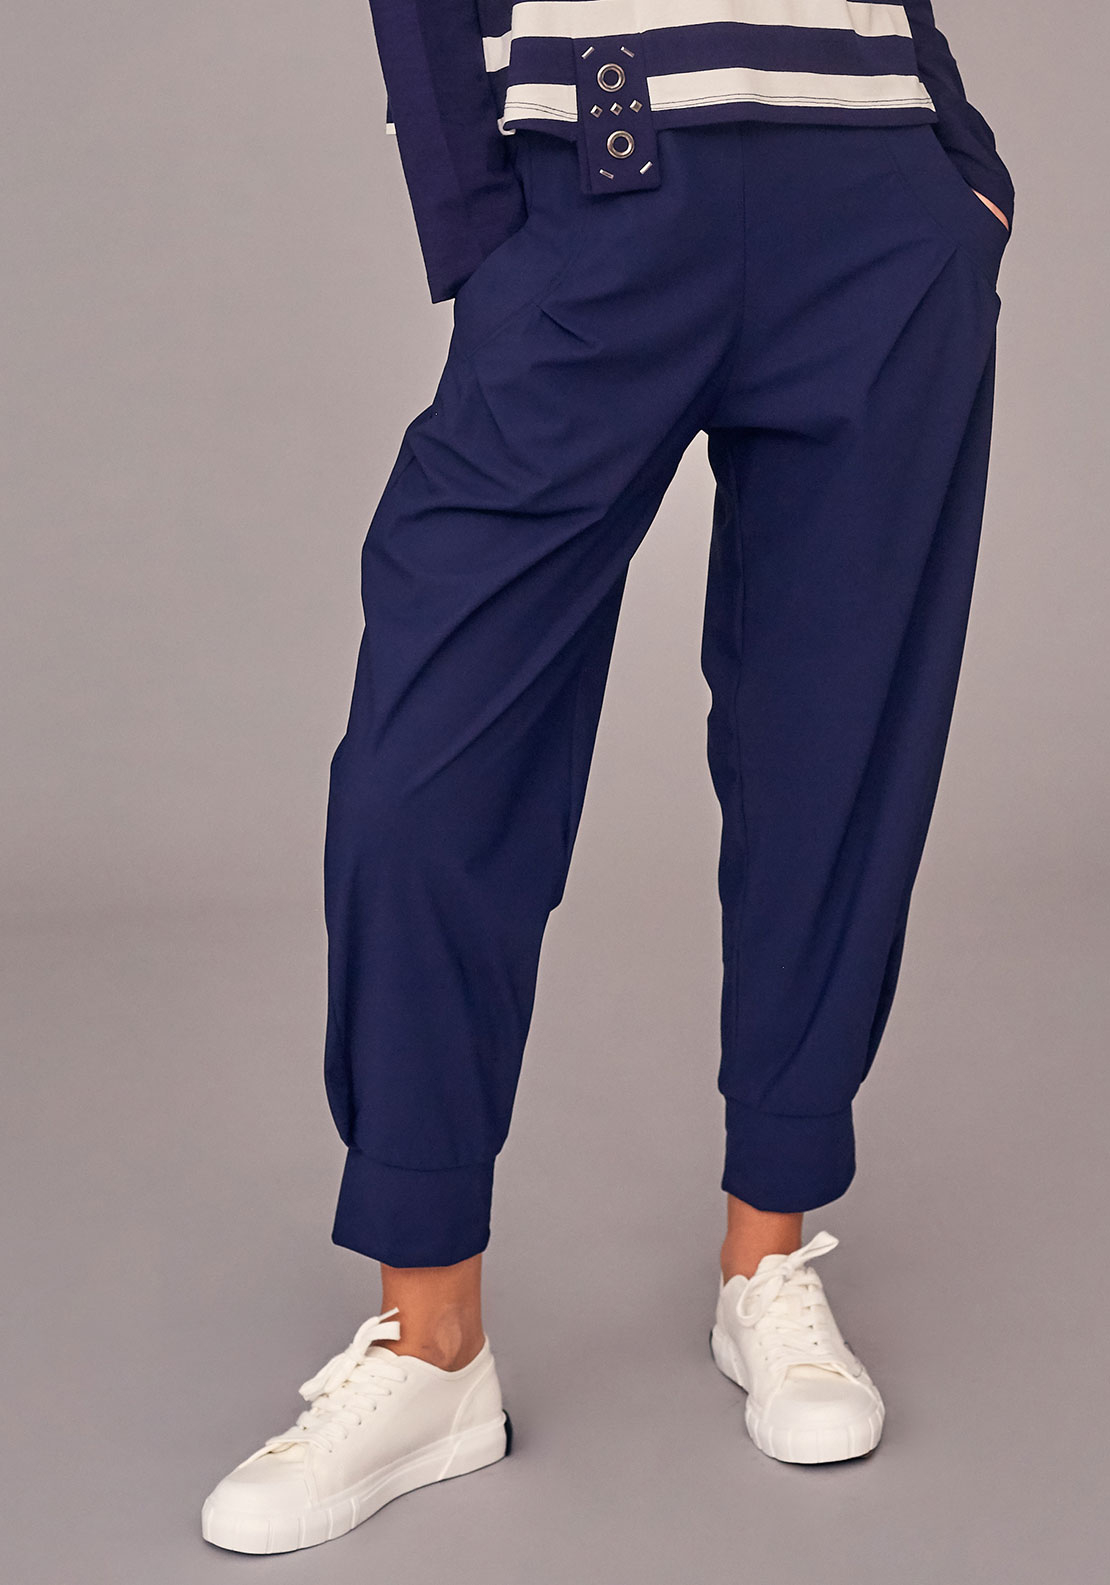 Naya Loose Fit Cropped Trousers, French Blue